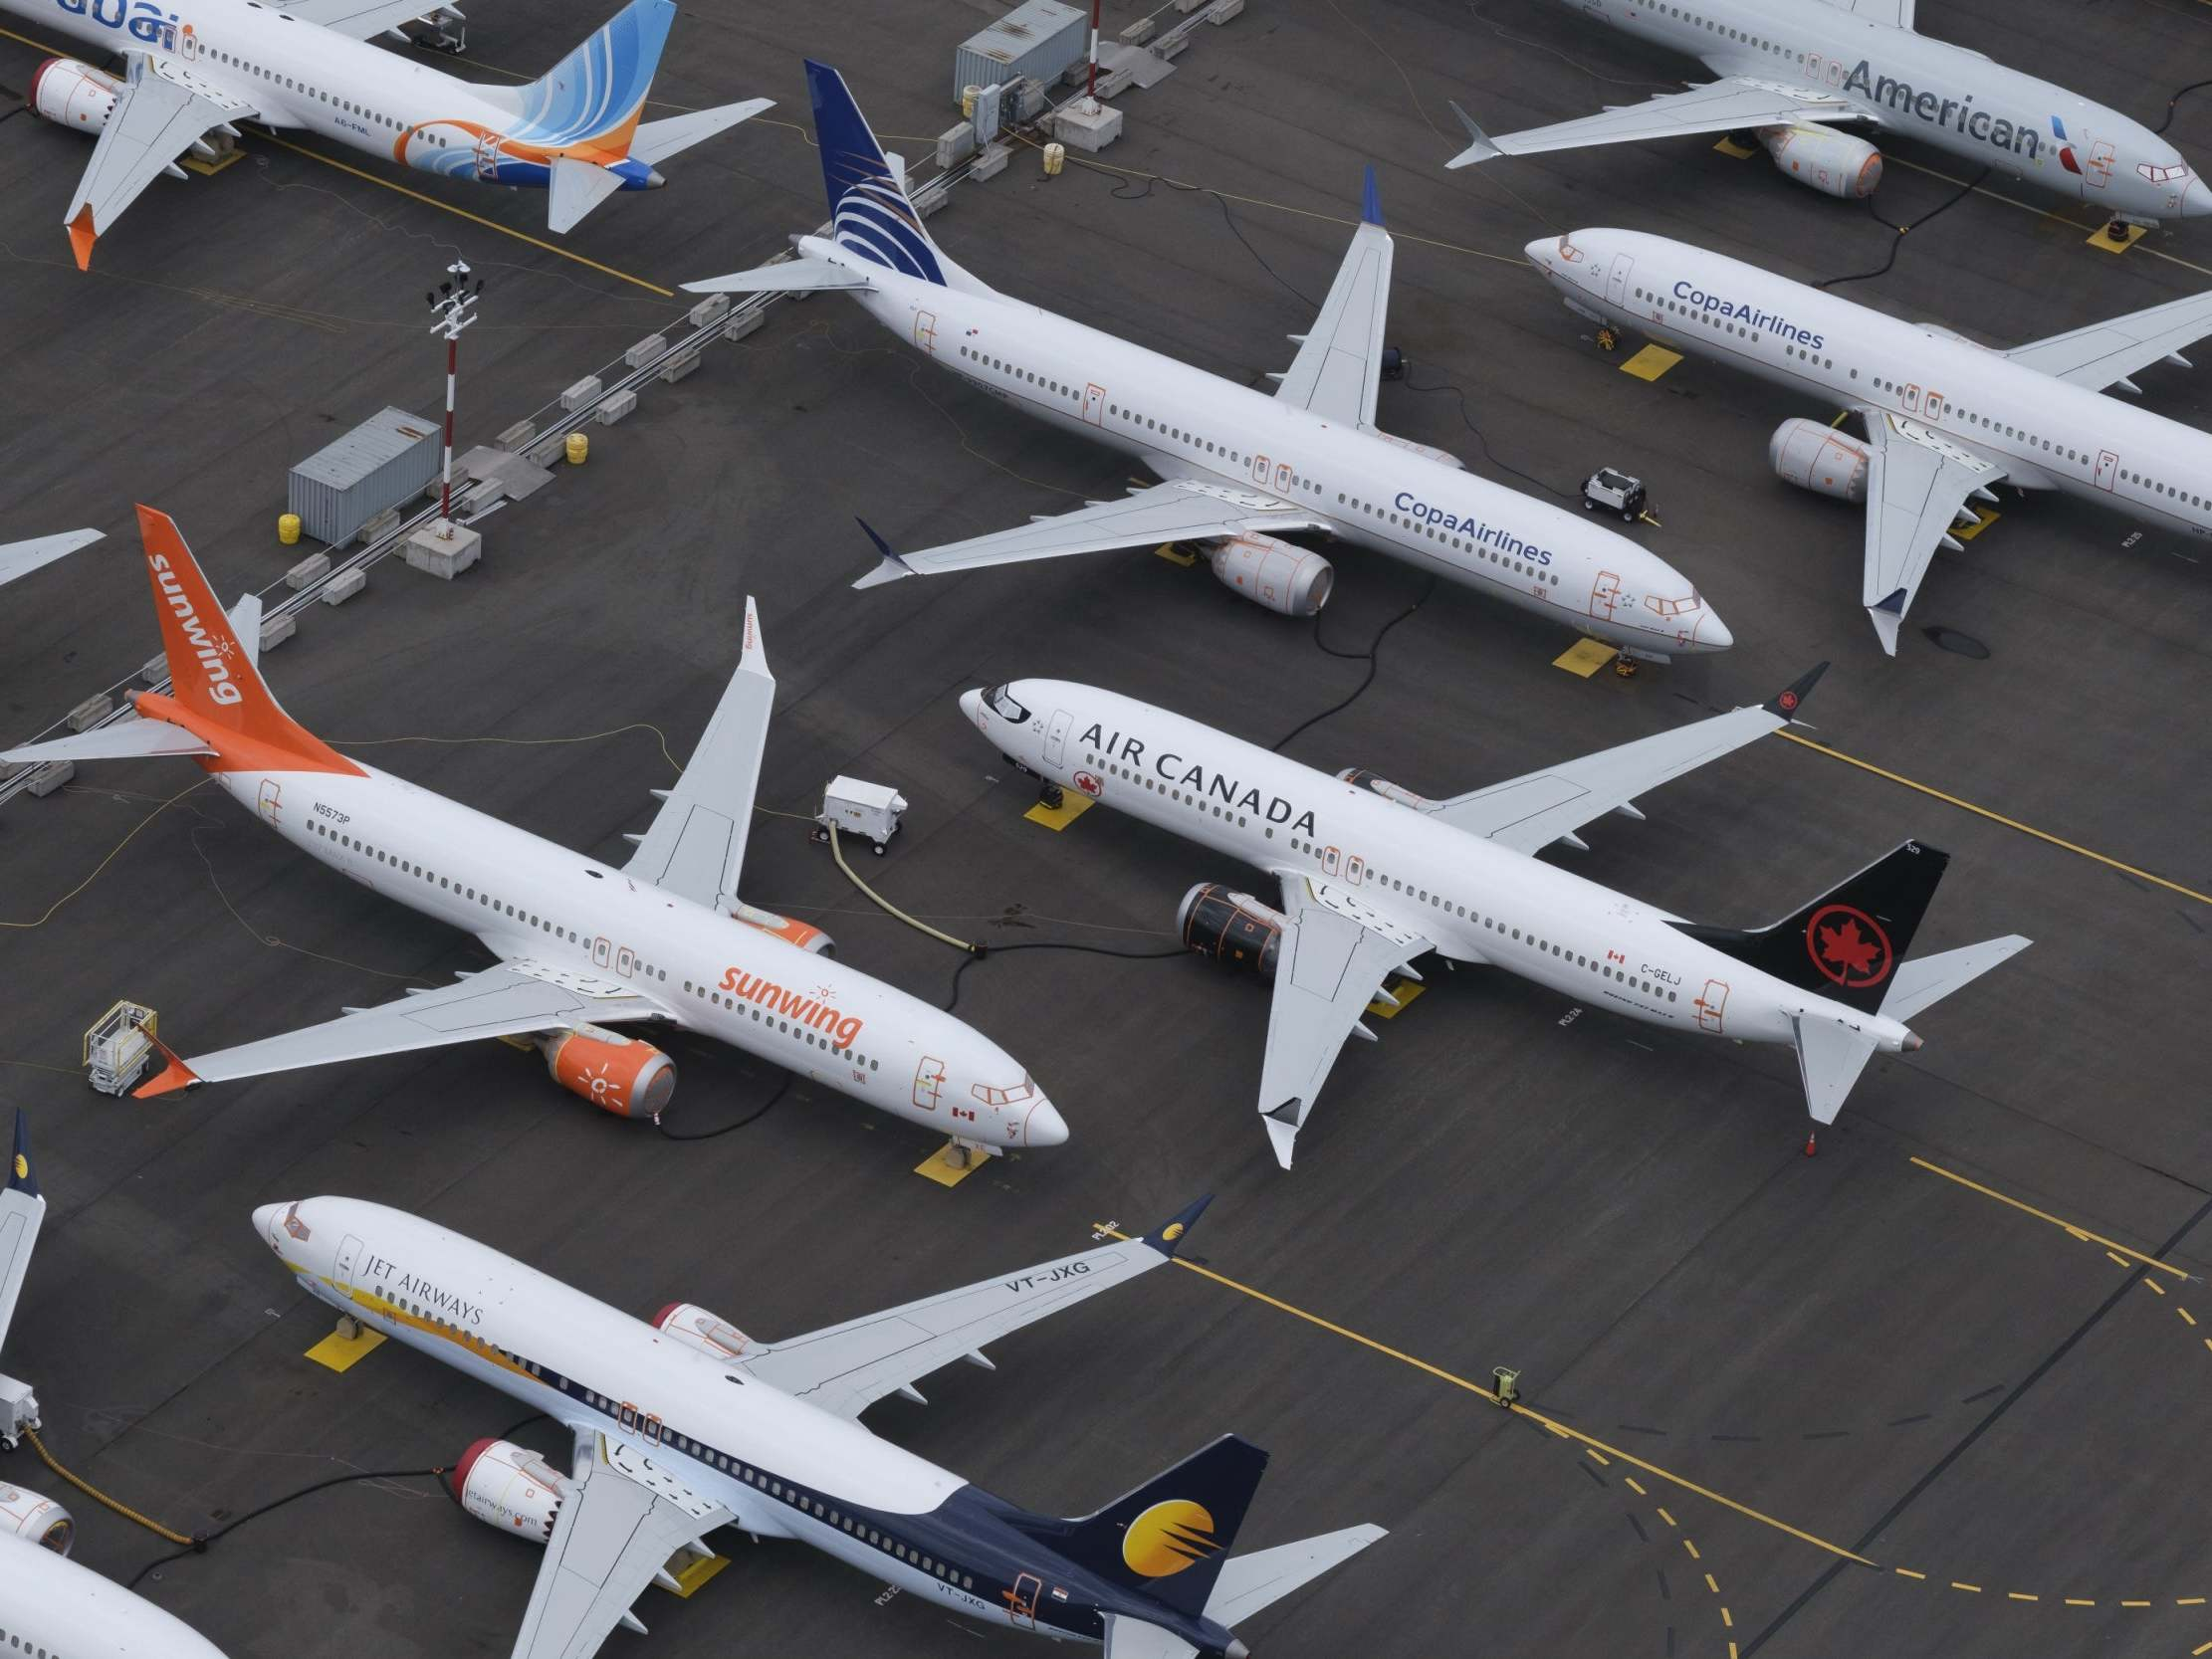 air travel - latest news, breaking stories and comment - The